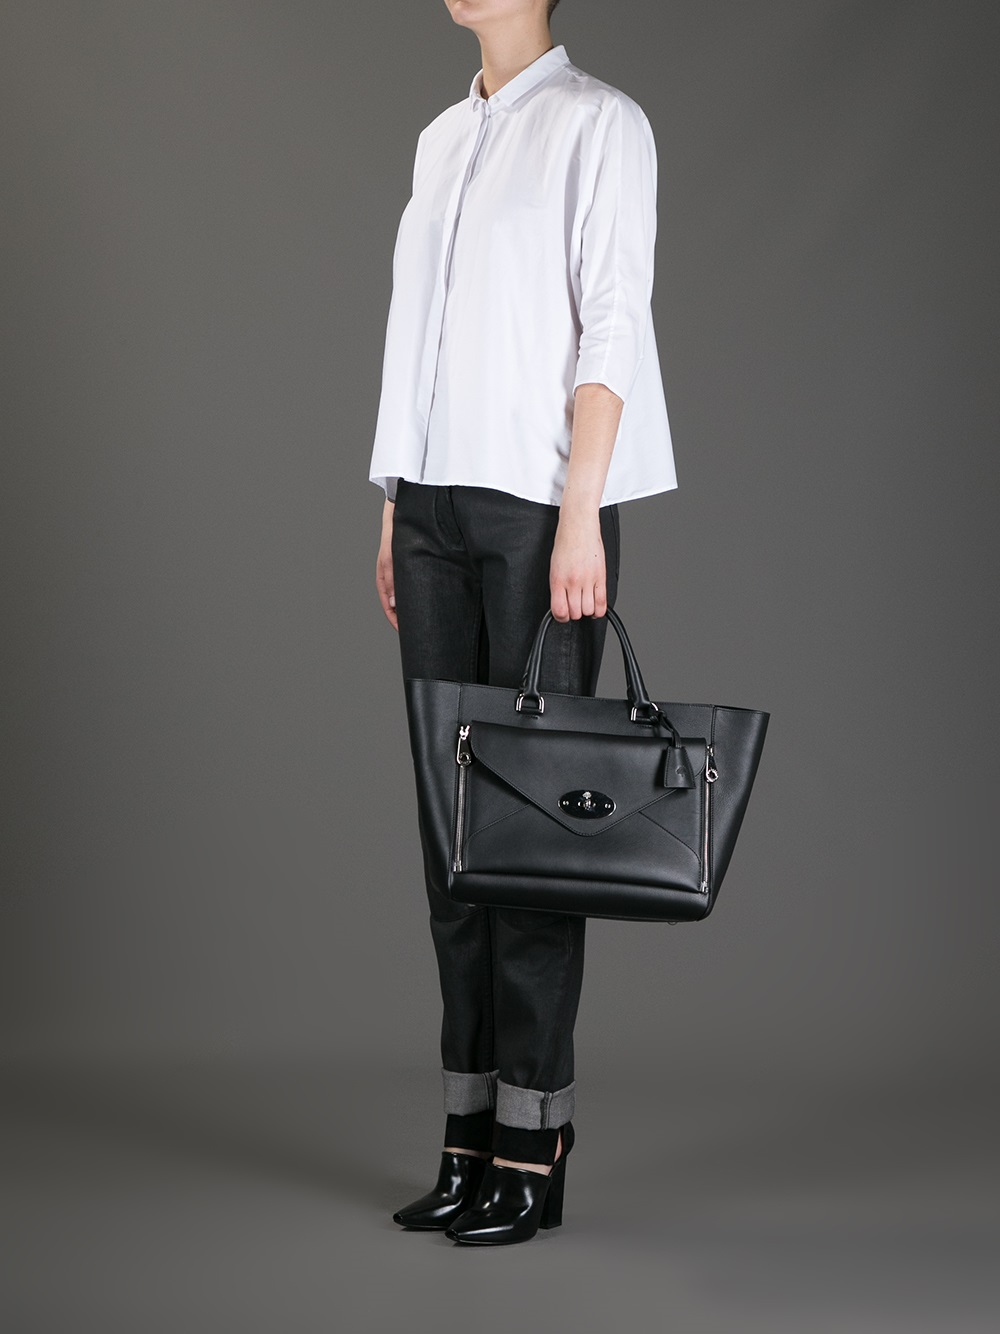 d39904658c6d ... calf small willow tote wheat 81278 ce722 dbf62 shop lyst mulberry  willow tote bag in black 20ee0 38516 ...